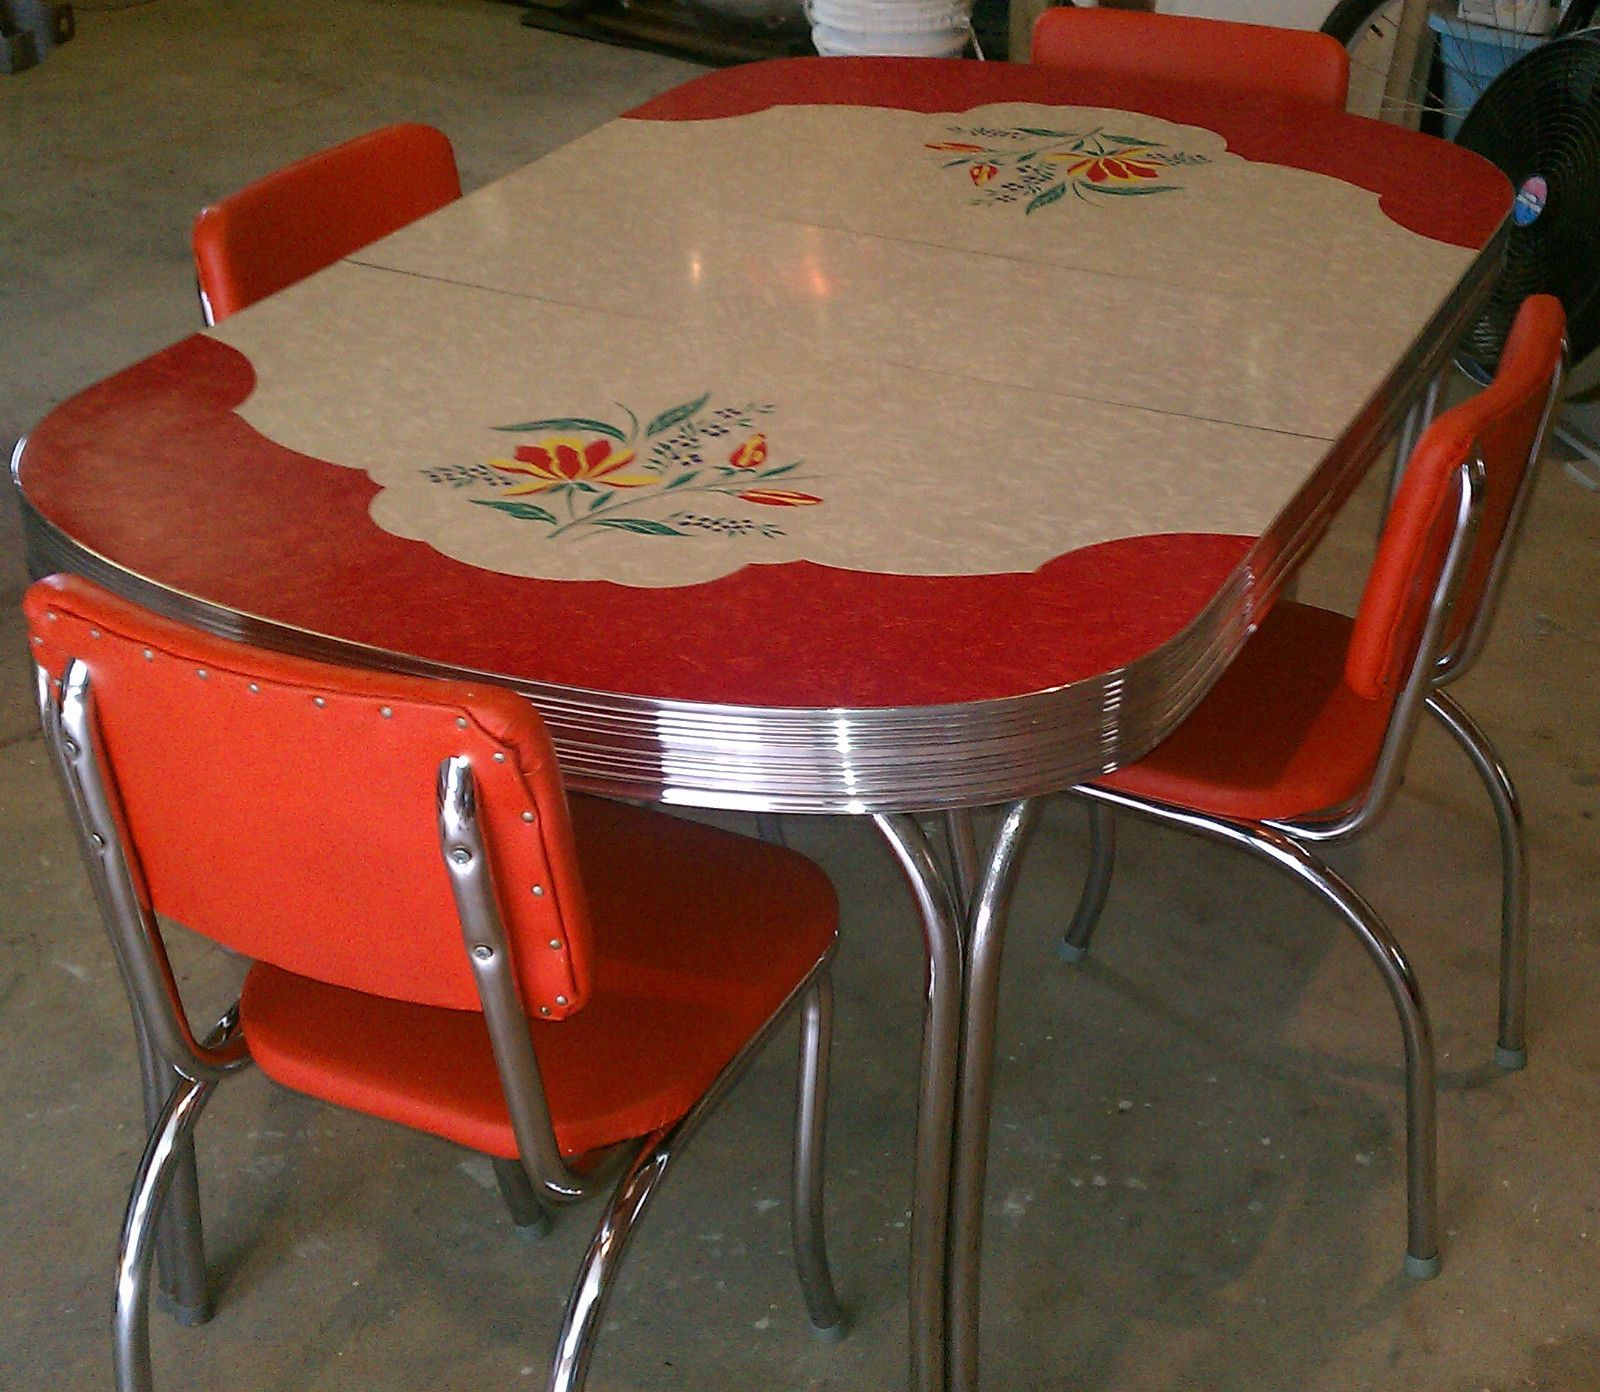 Formica Table And Chairs Vintage Kitchen Formica Table 4 Chairs Chrome Orange Red